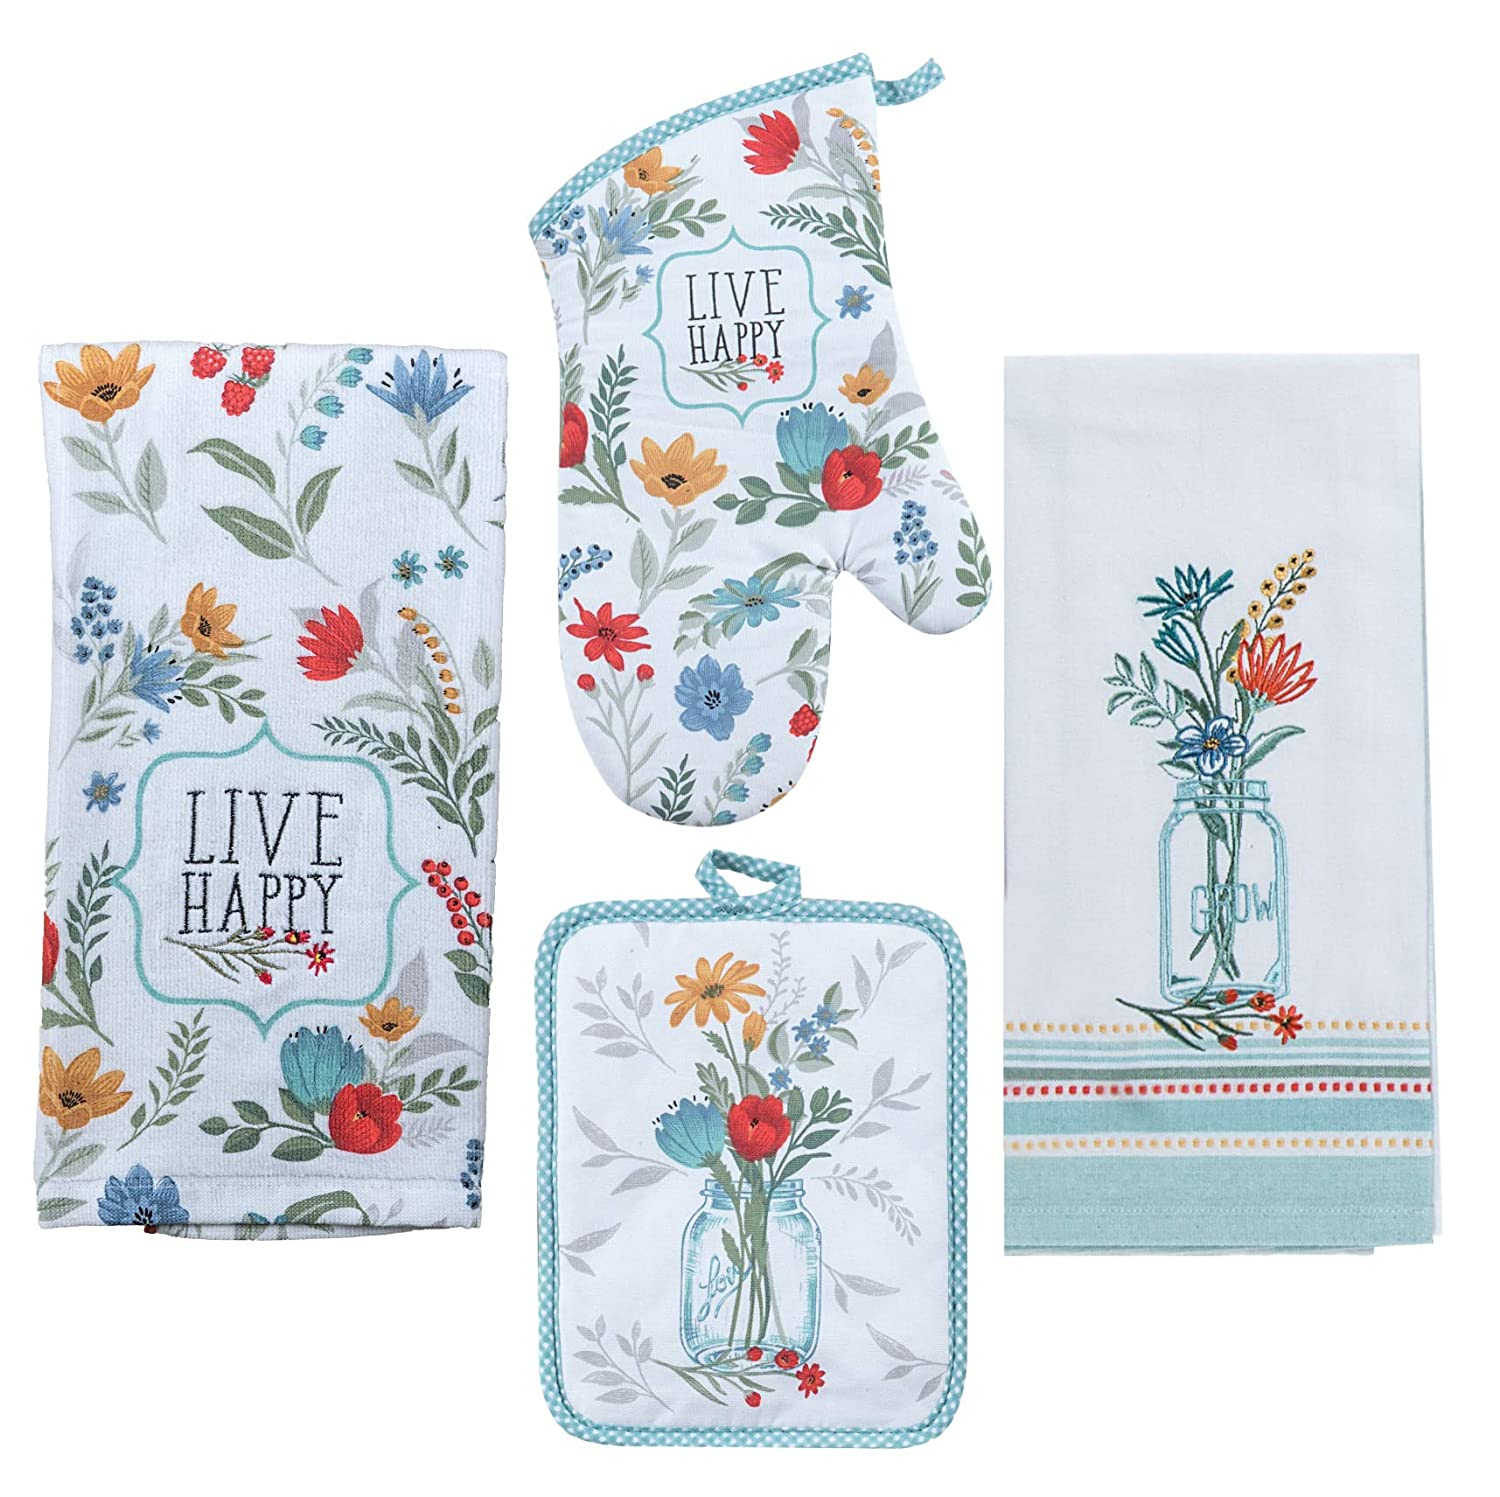 Blooming Thoughts Kitchen Linen Set - 4 Piece Bundle Includes 1 Terry Towel, 1 Tea Towel, 1 Oven Mitt, and 1 Potholder